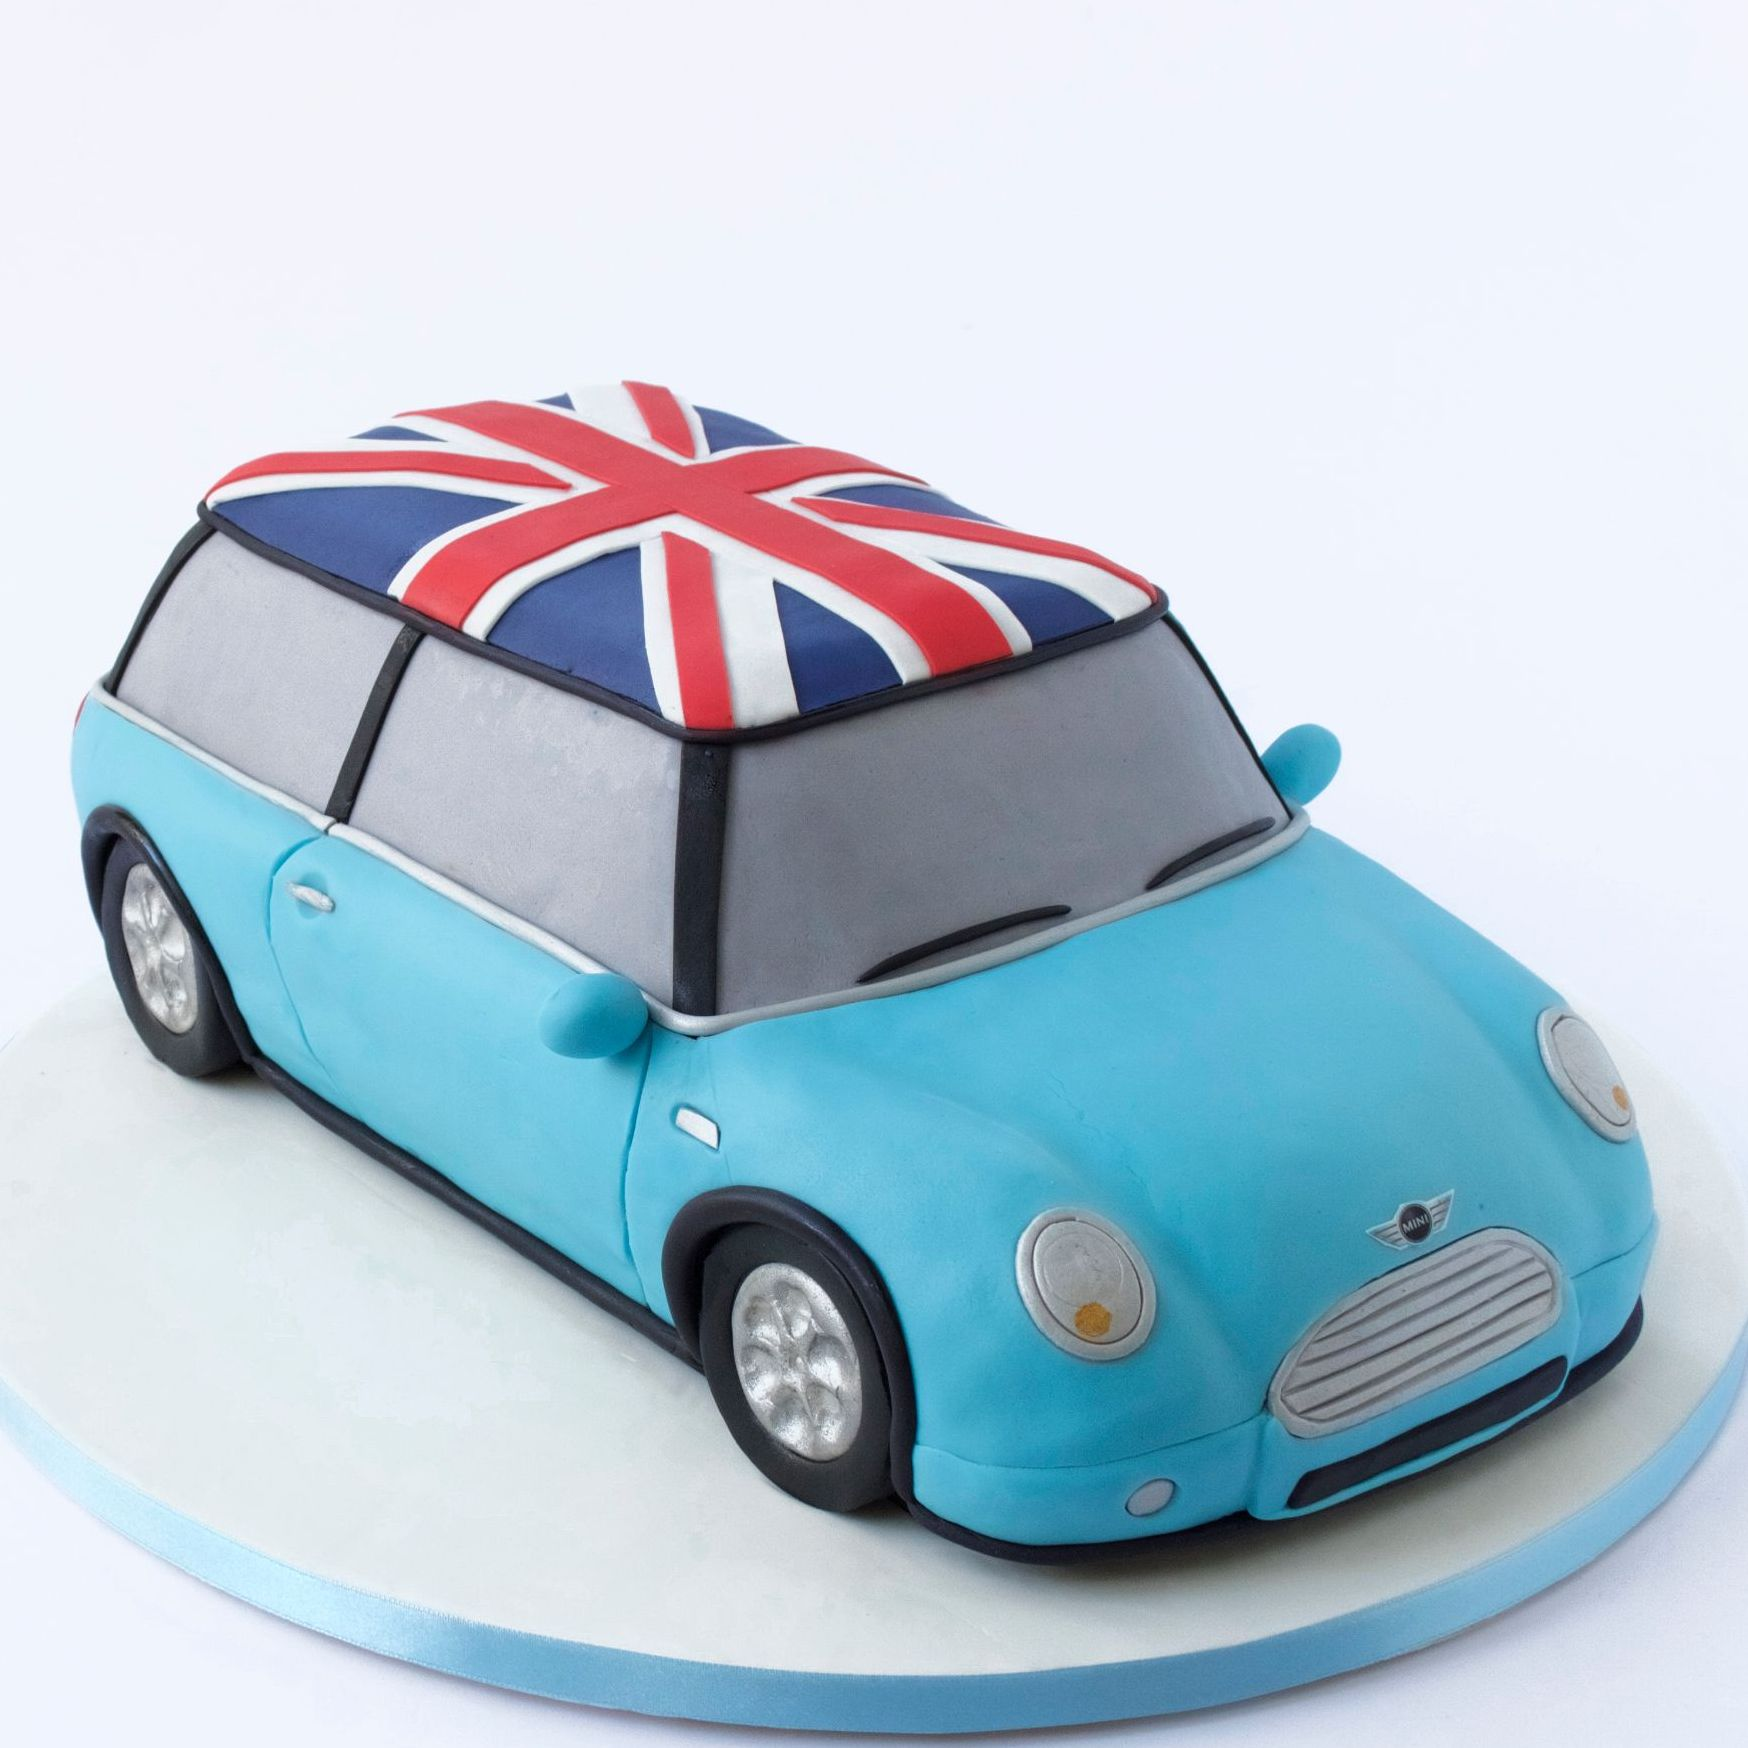 3D CAR CAKE MINI COOPER ROOF UK FLAG DESIGN jack Union Classic